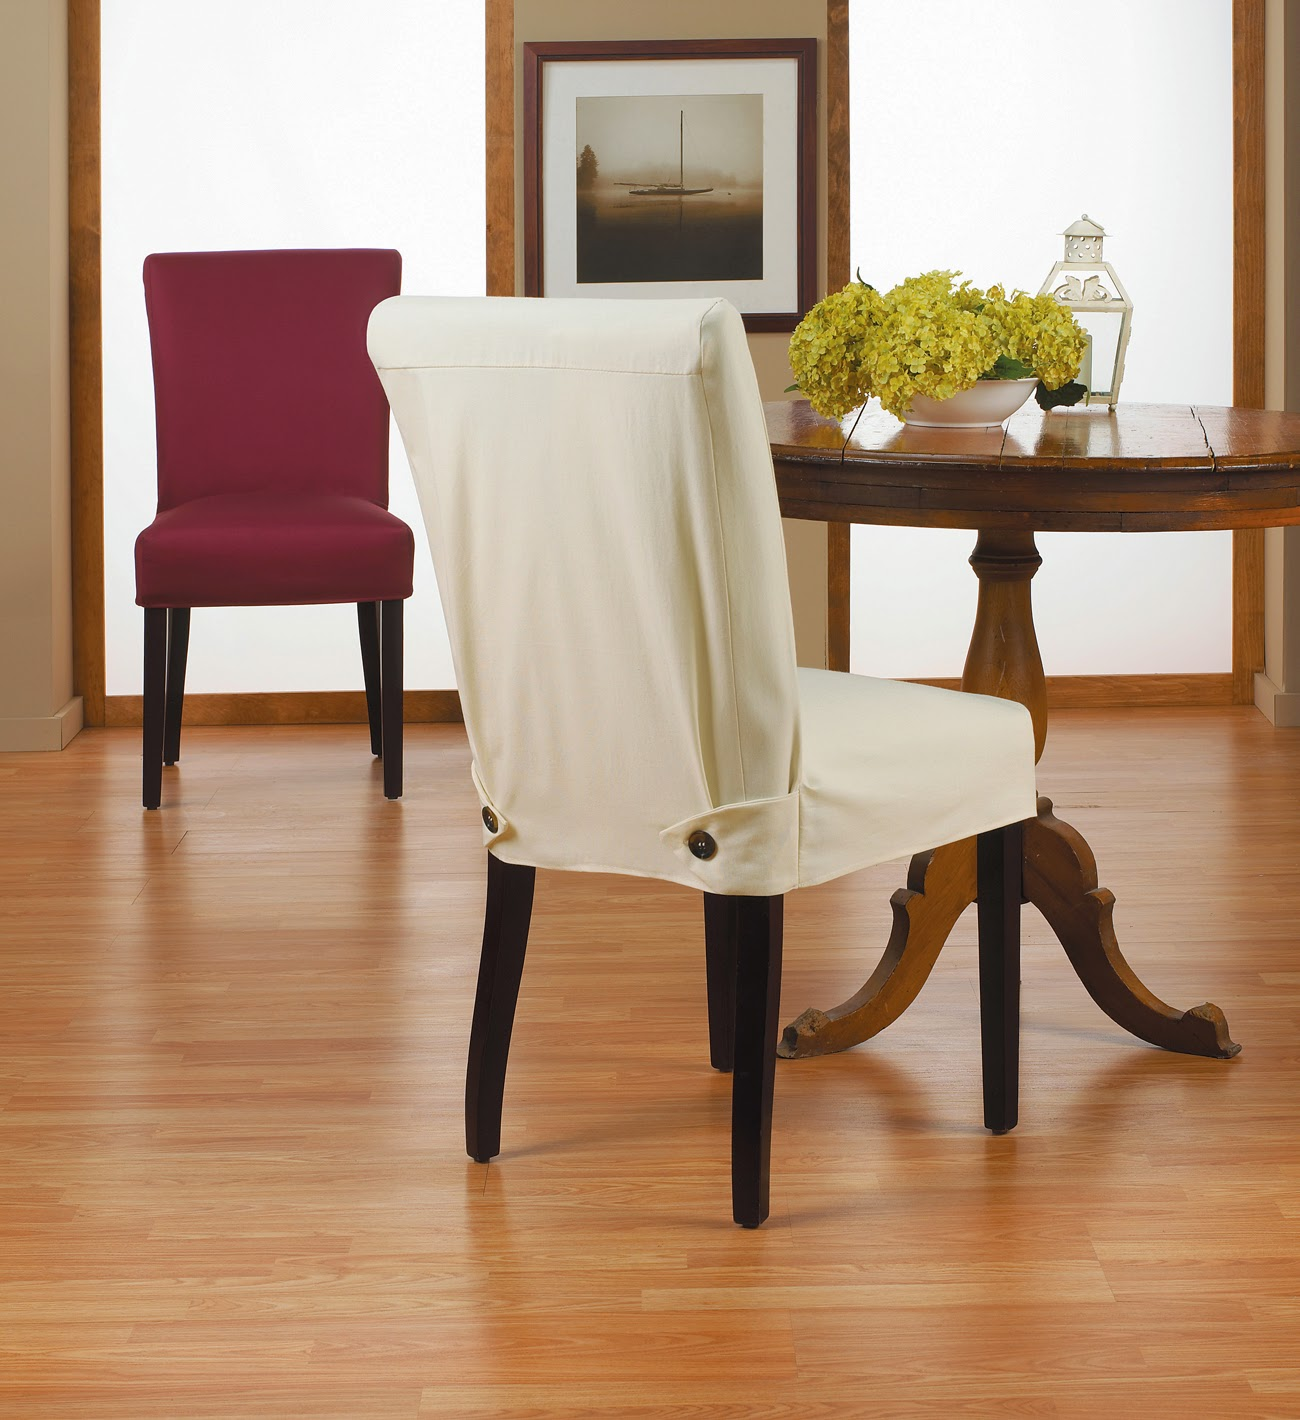 Chair Back Covers For Dining Room Chairs With Arms Pictures To Pin U2013